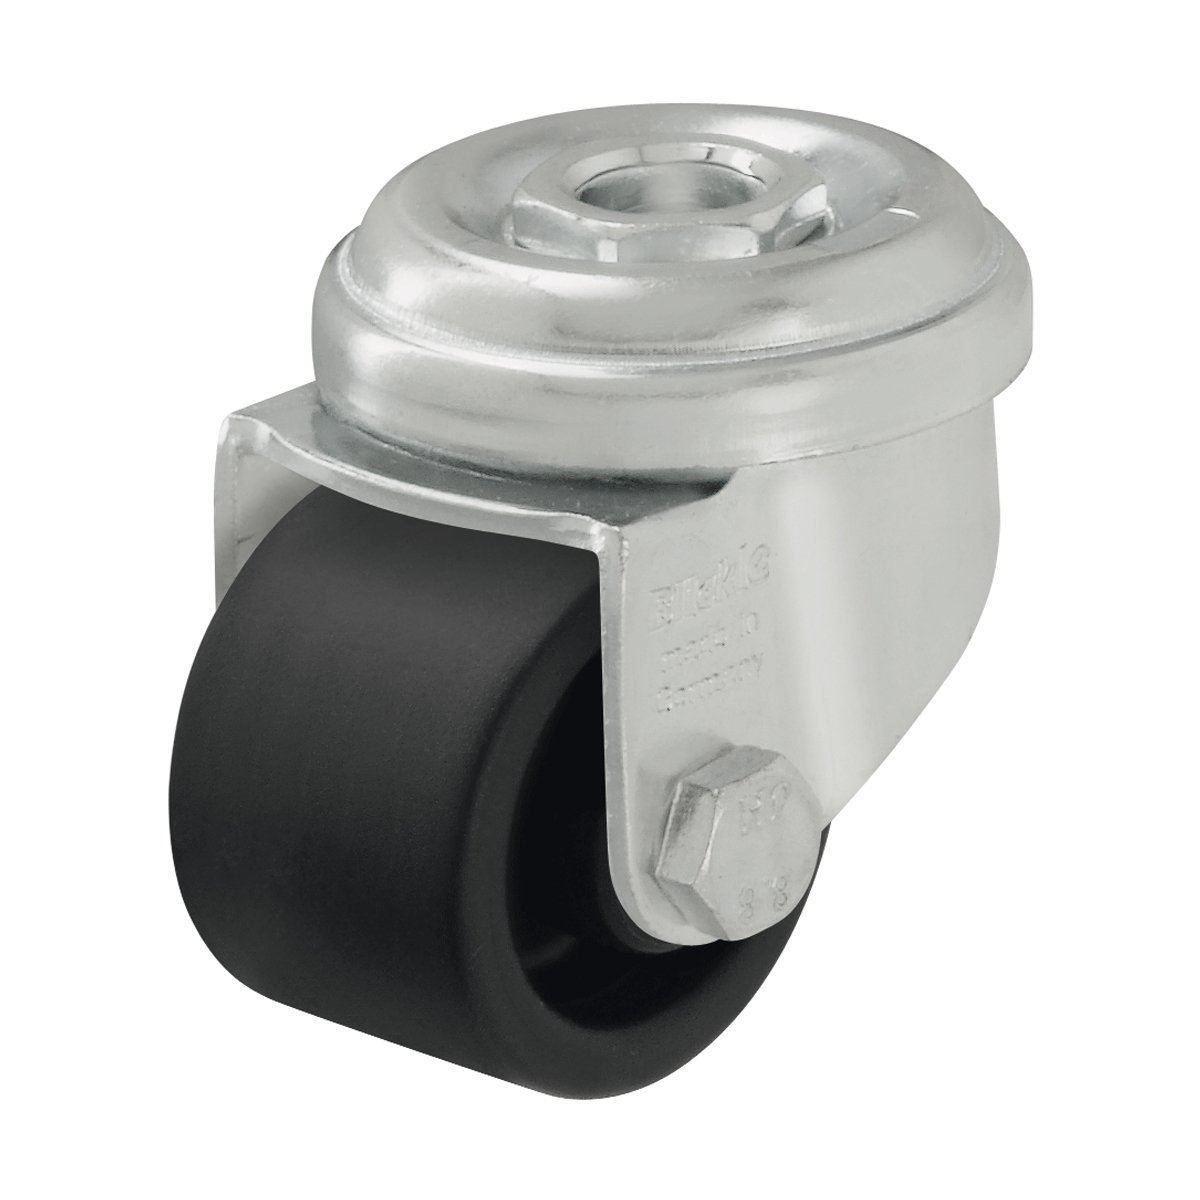 J.W. Winco 750GBB2 Caster, Swivel Bracket: Zinc Plated Steel Stamping, with Bolt Hole Mounting or Threaded Stem Mounting